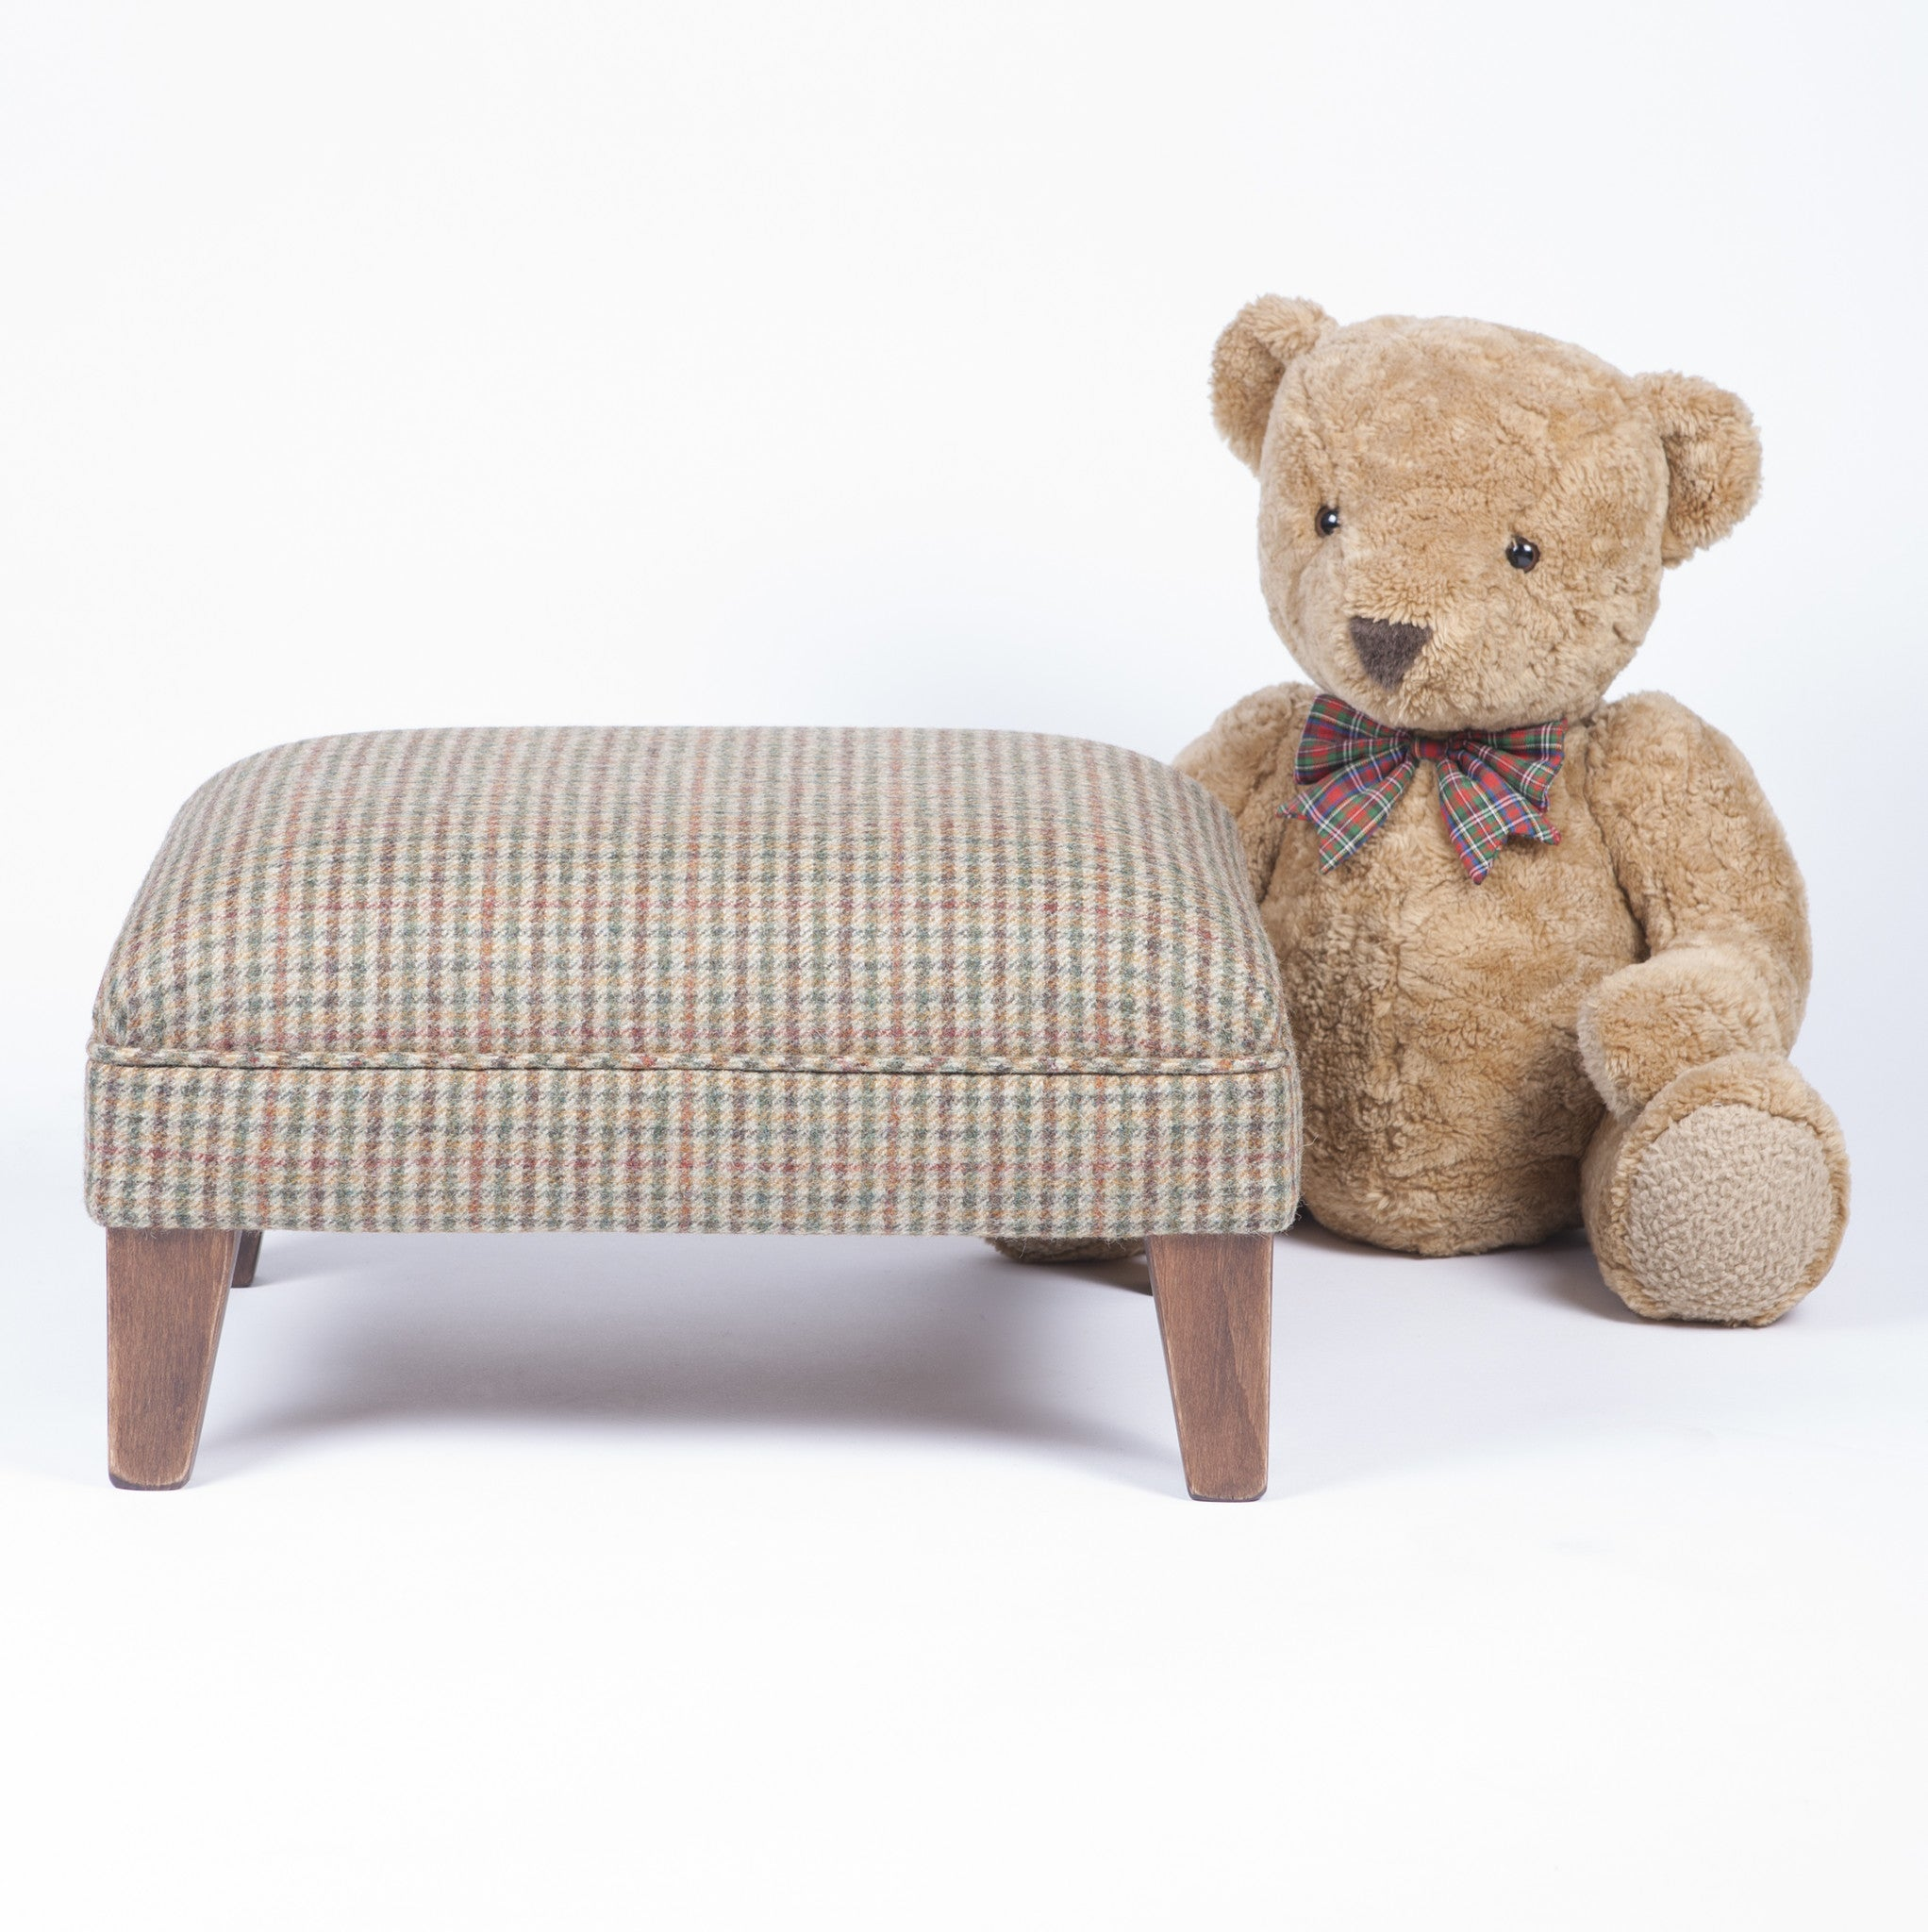 Burlington Footstool - Ellerby England